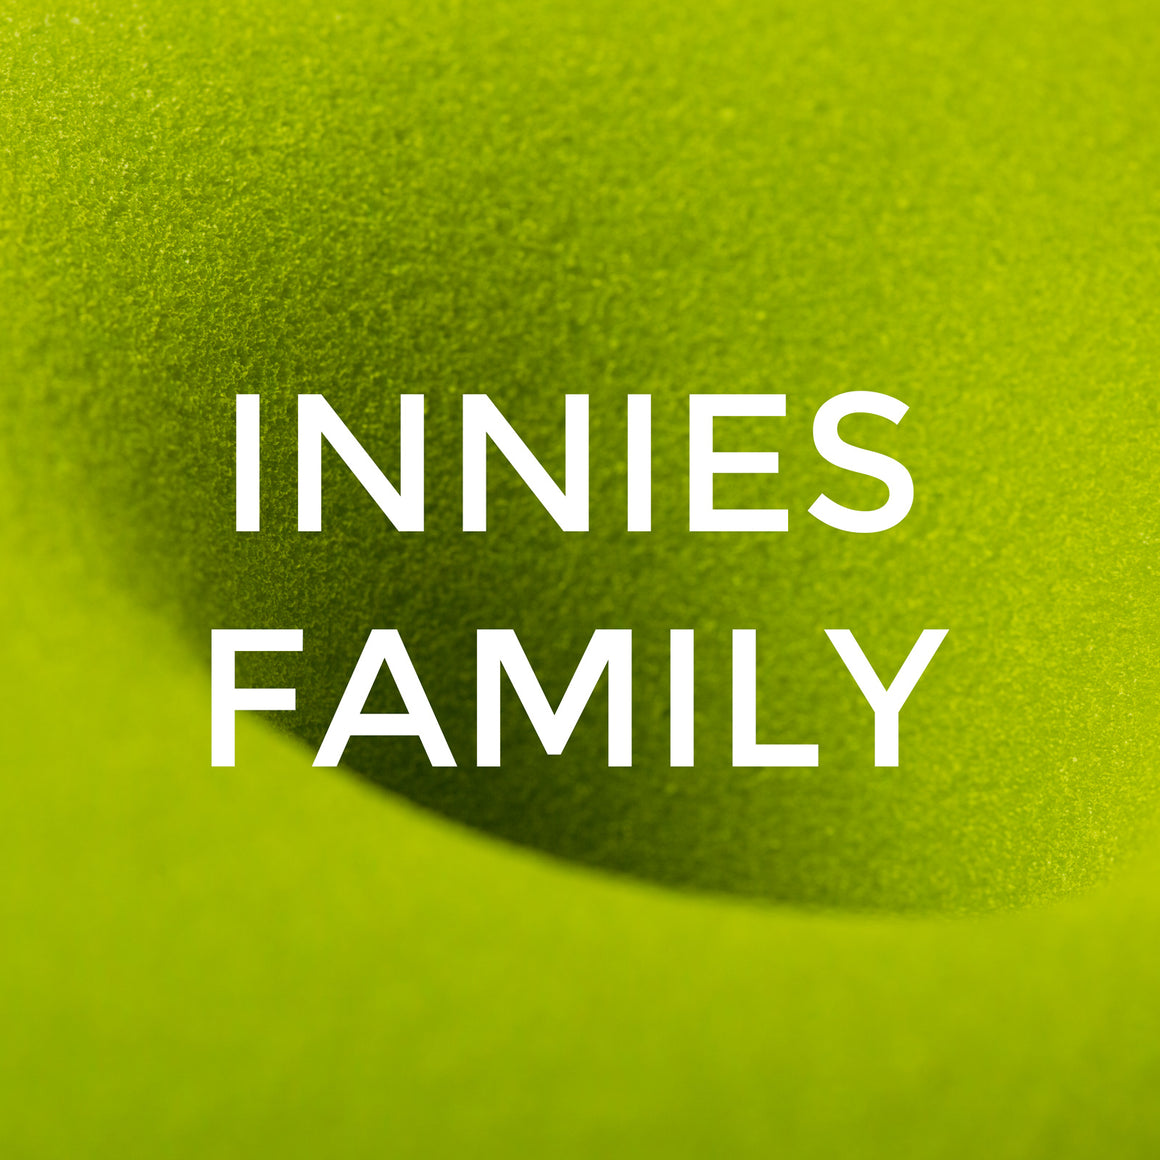 Innies Family